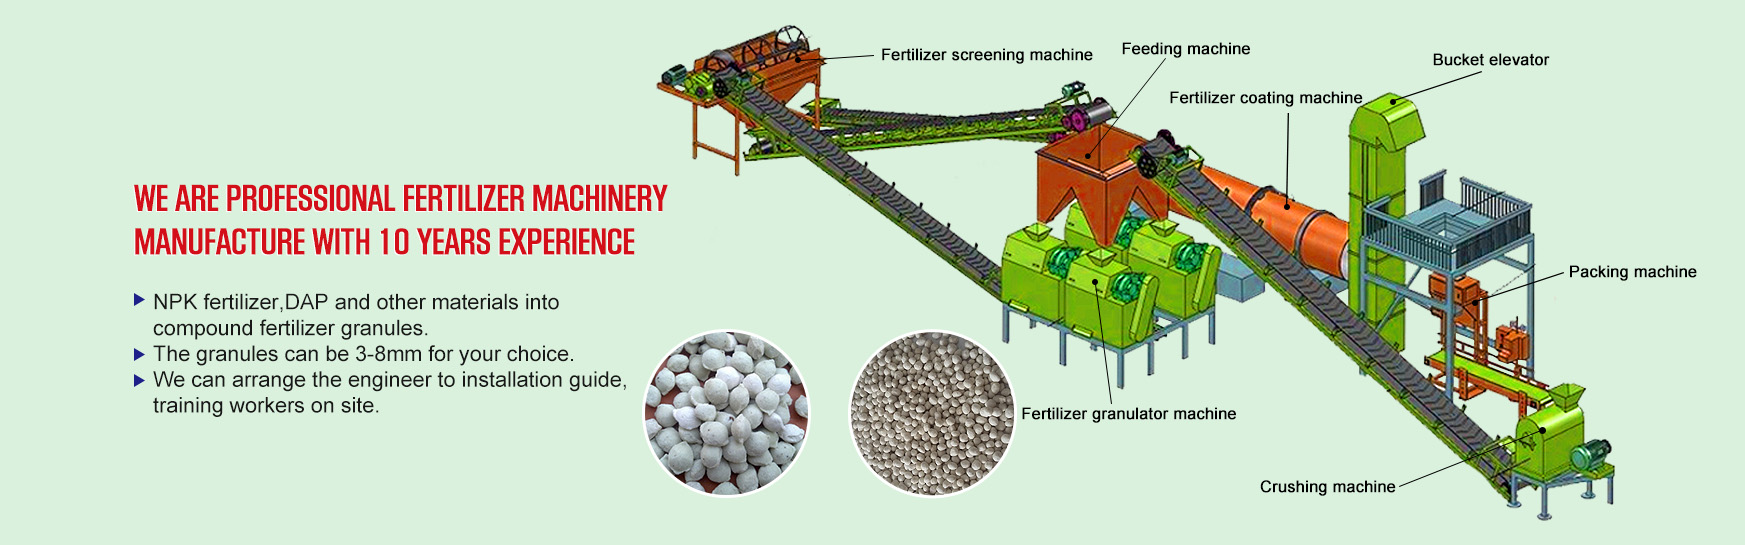 COMPOUND fertilizer produksje line